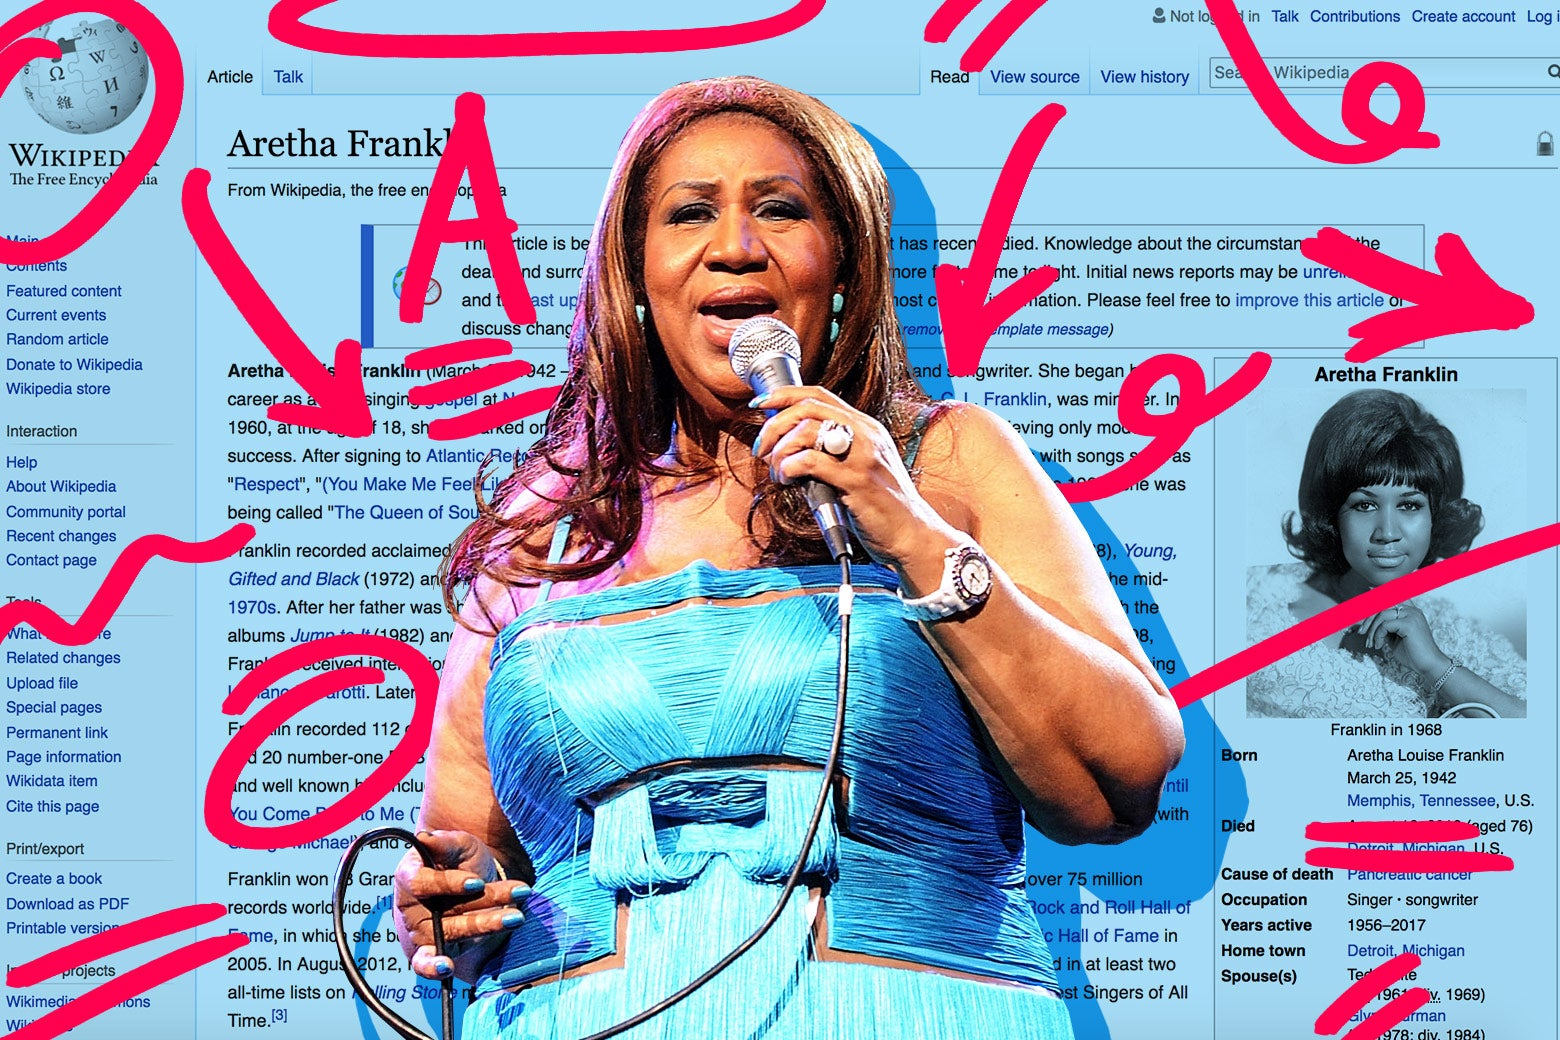 A photo of Aretha Franklin laid over her Wikipedia page, with editing marks throughout.